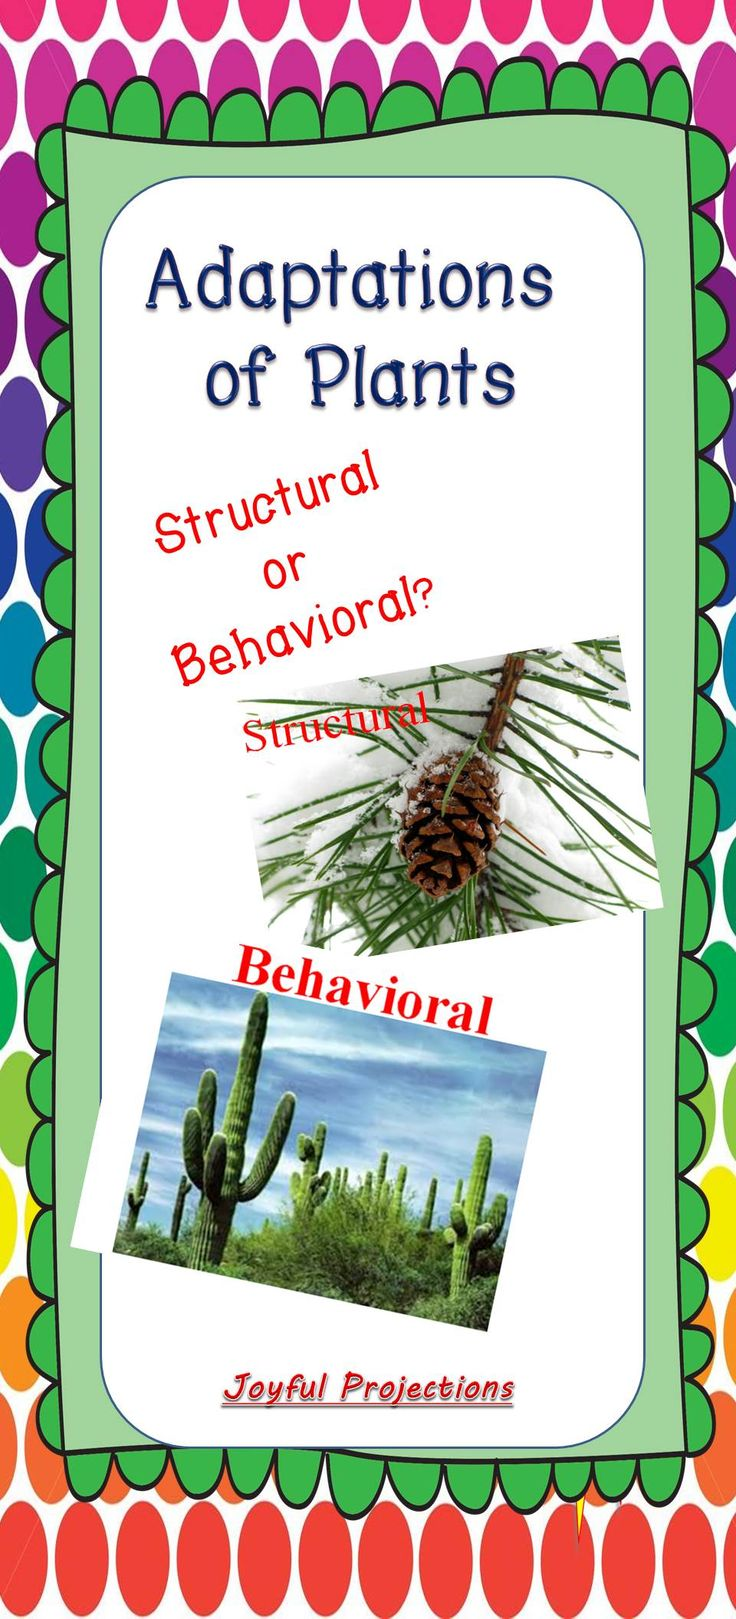 Just like animals, plants have structural and behavioral adaptations. Students can take notes on the definitions of each, and then list and diagram each photo under the correct category of its adaptation.